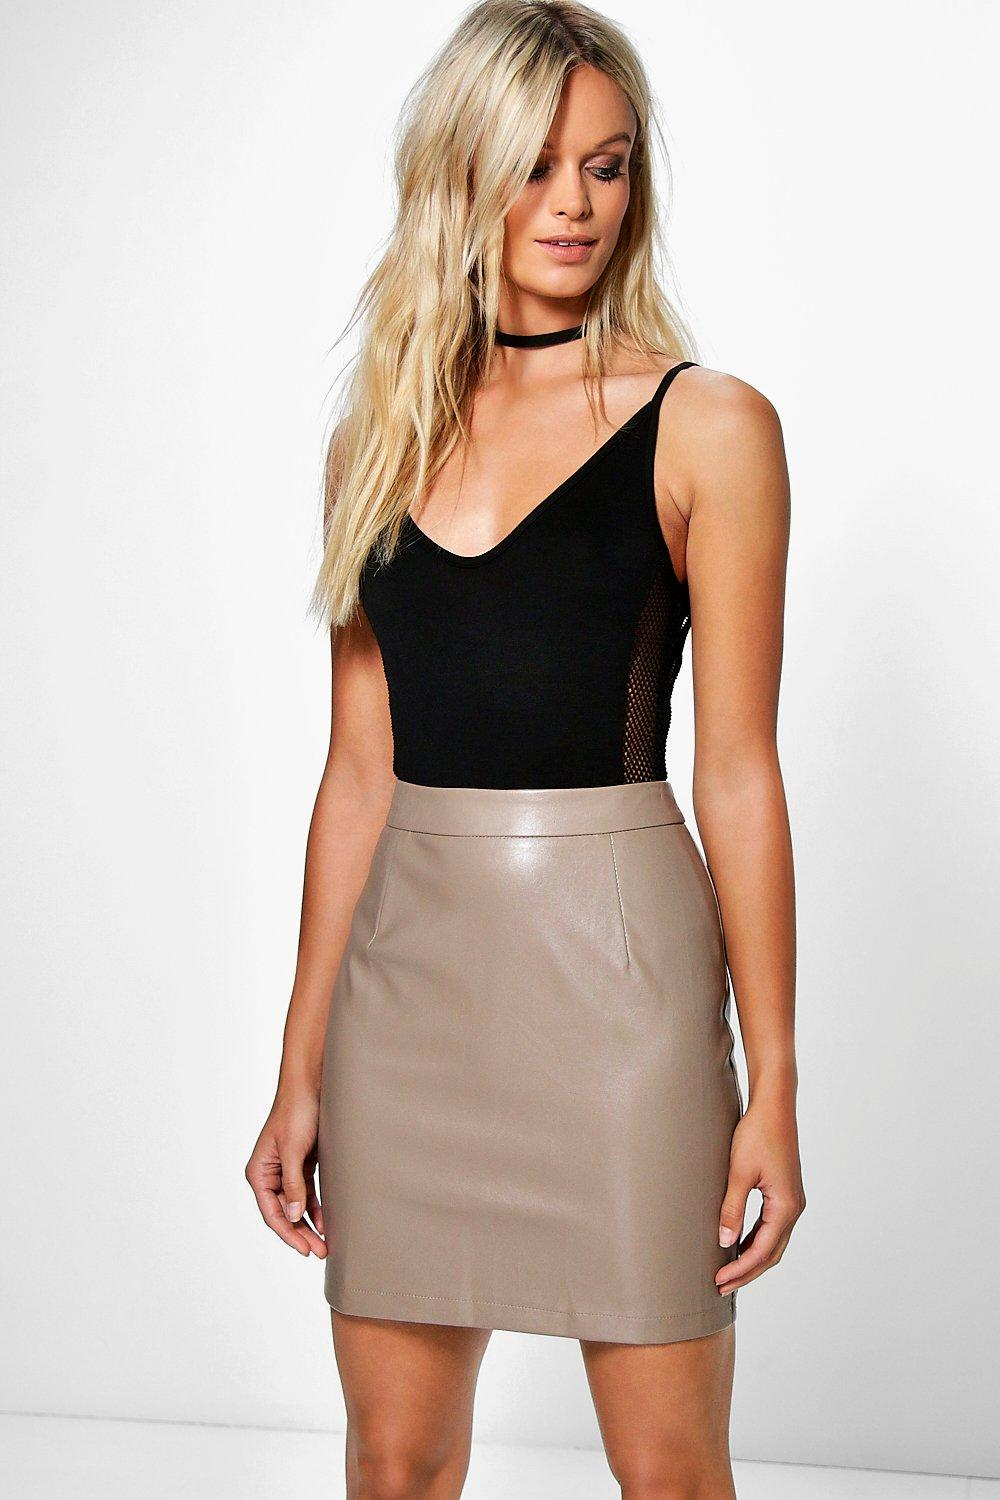 Petite Skirt | Shop all Petite Skirts at boohoo